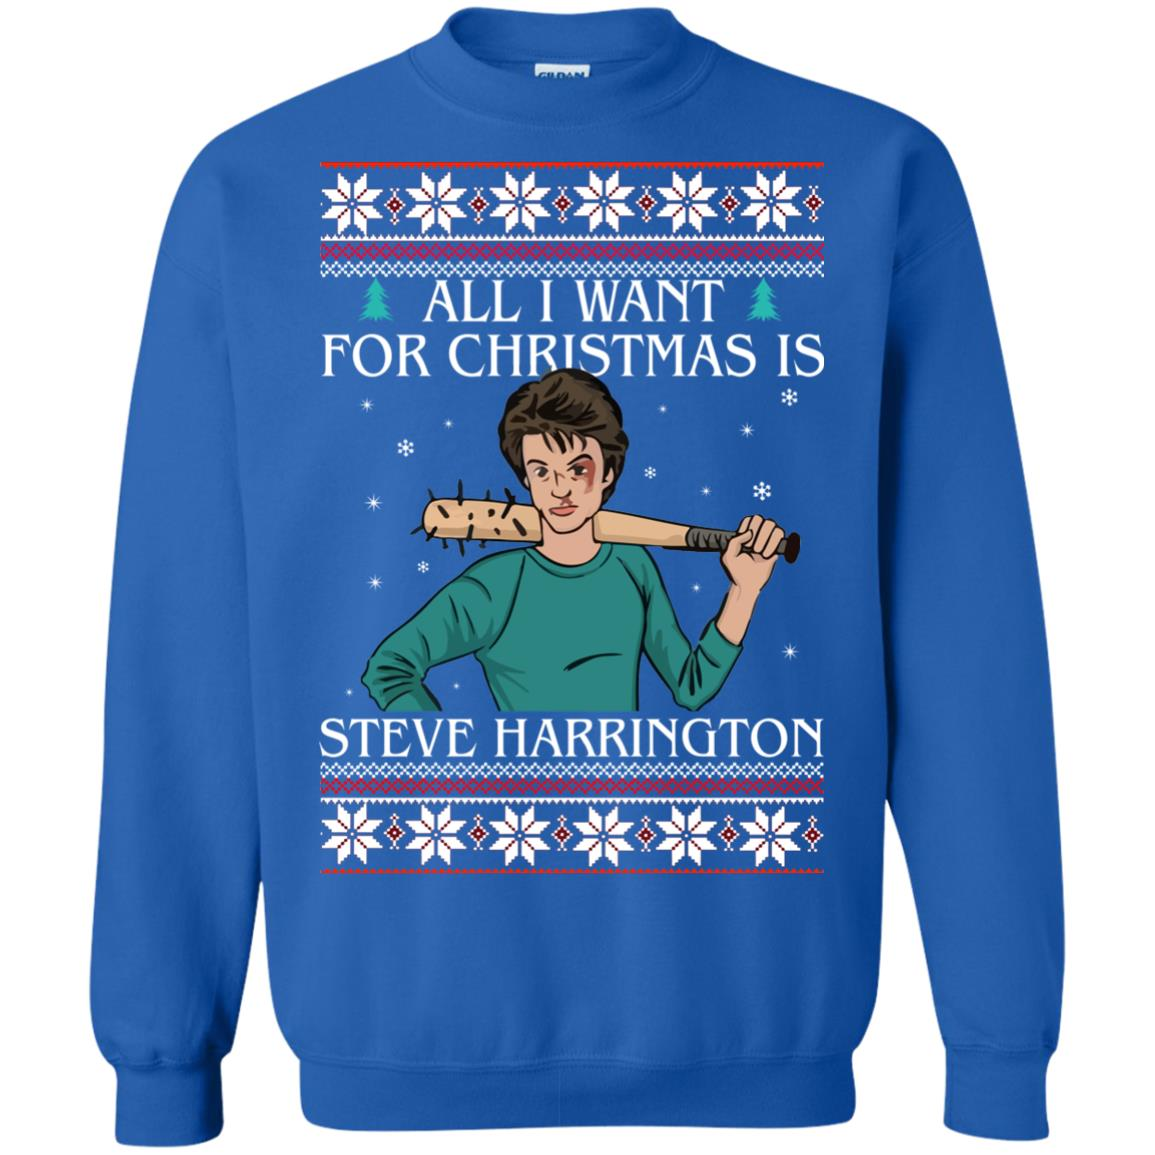 image 4038 - All I want for Christmas is Steve Harrington Ugly Sweater